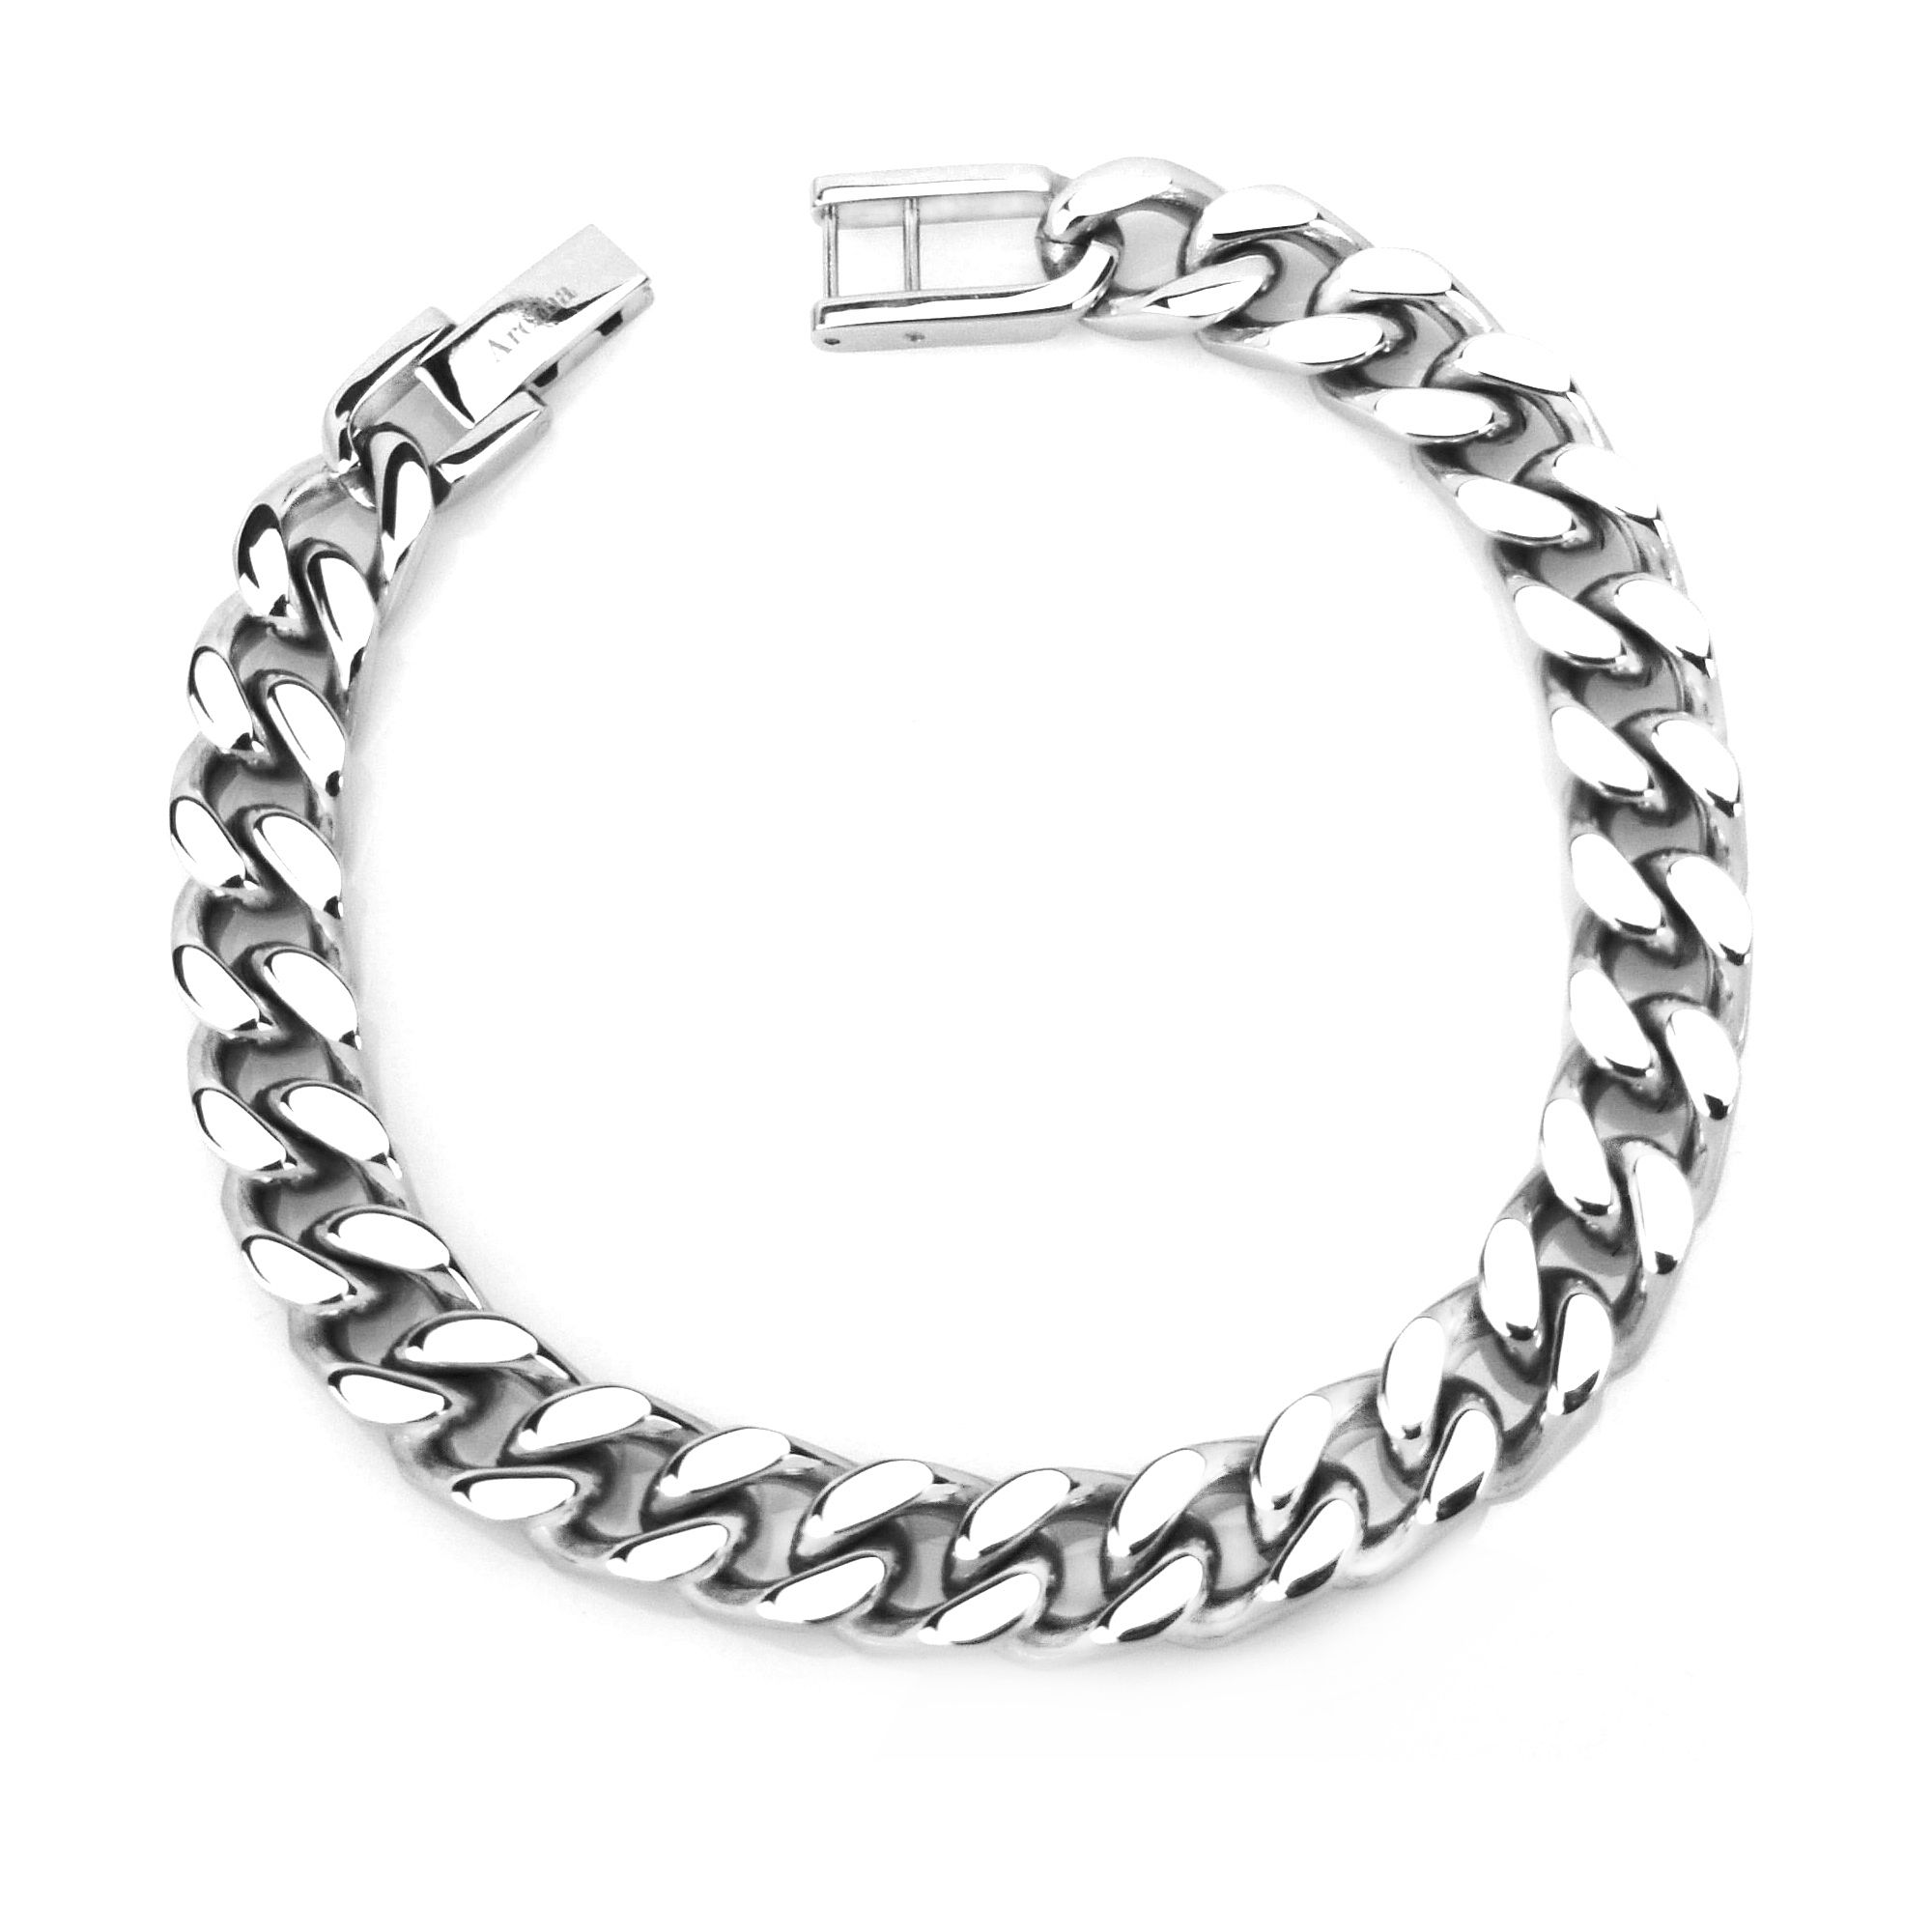 reviews male in women pcr bracelet couples stainless and cuff steel customer best his rated s helpful bracelets for men i jewelry hers